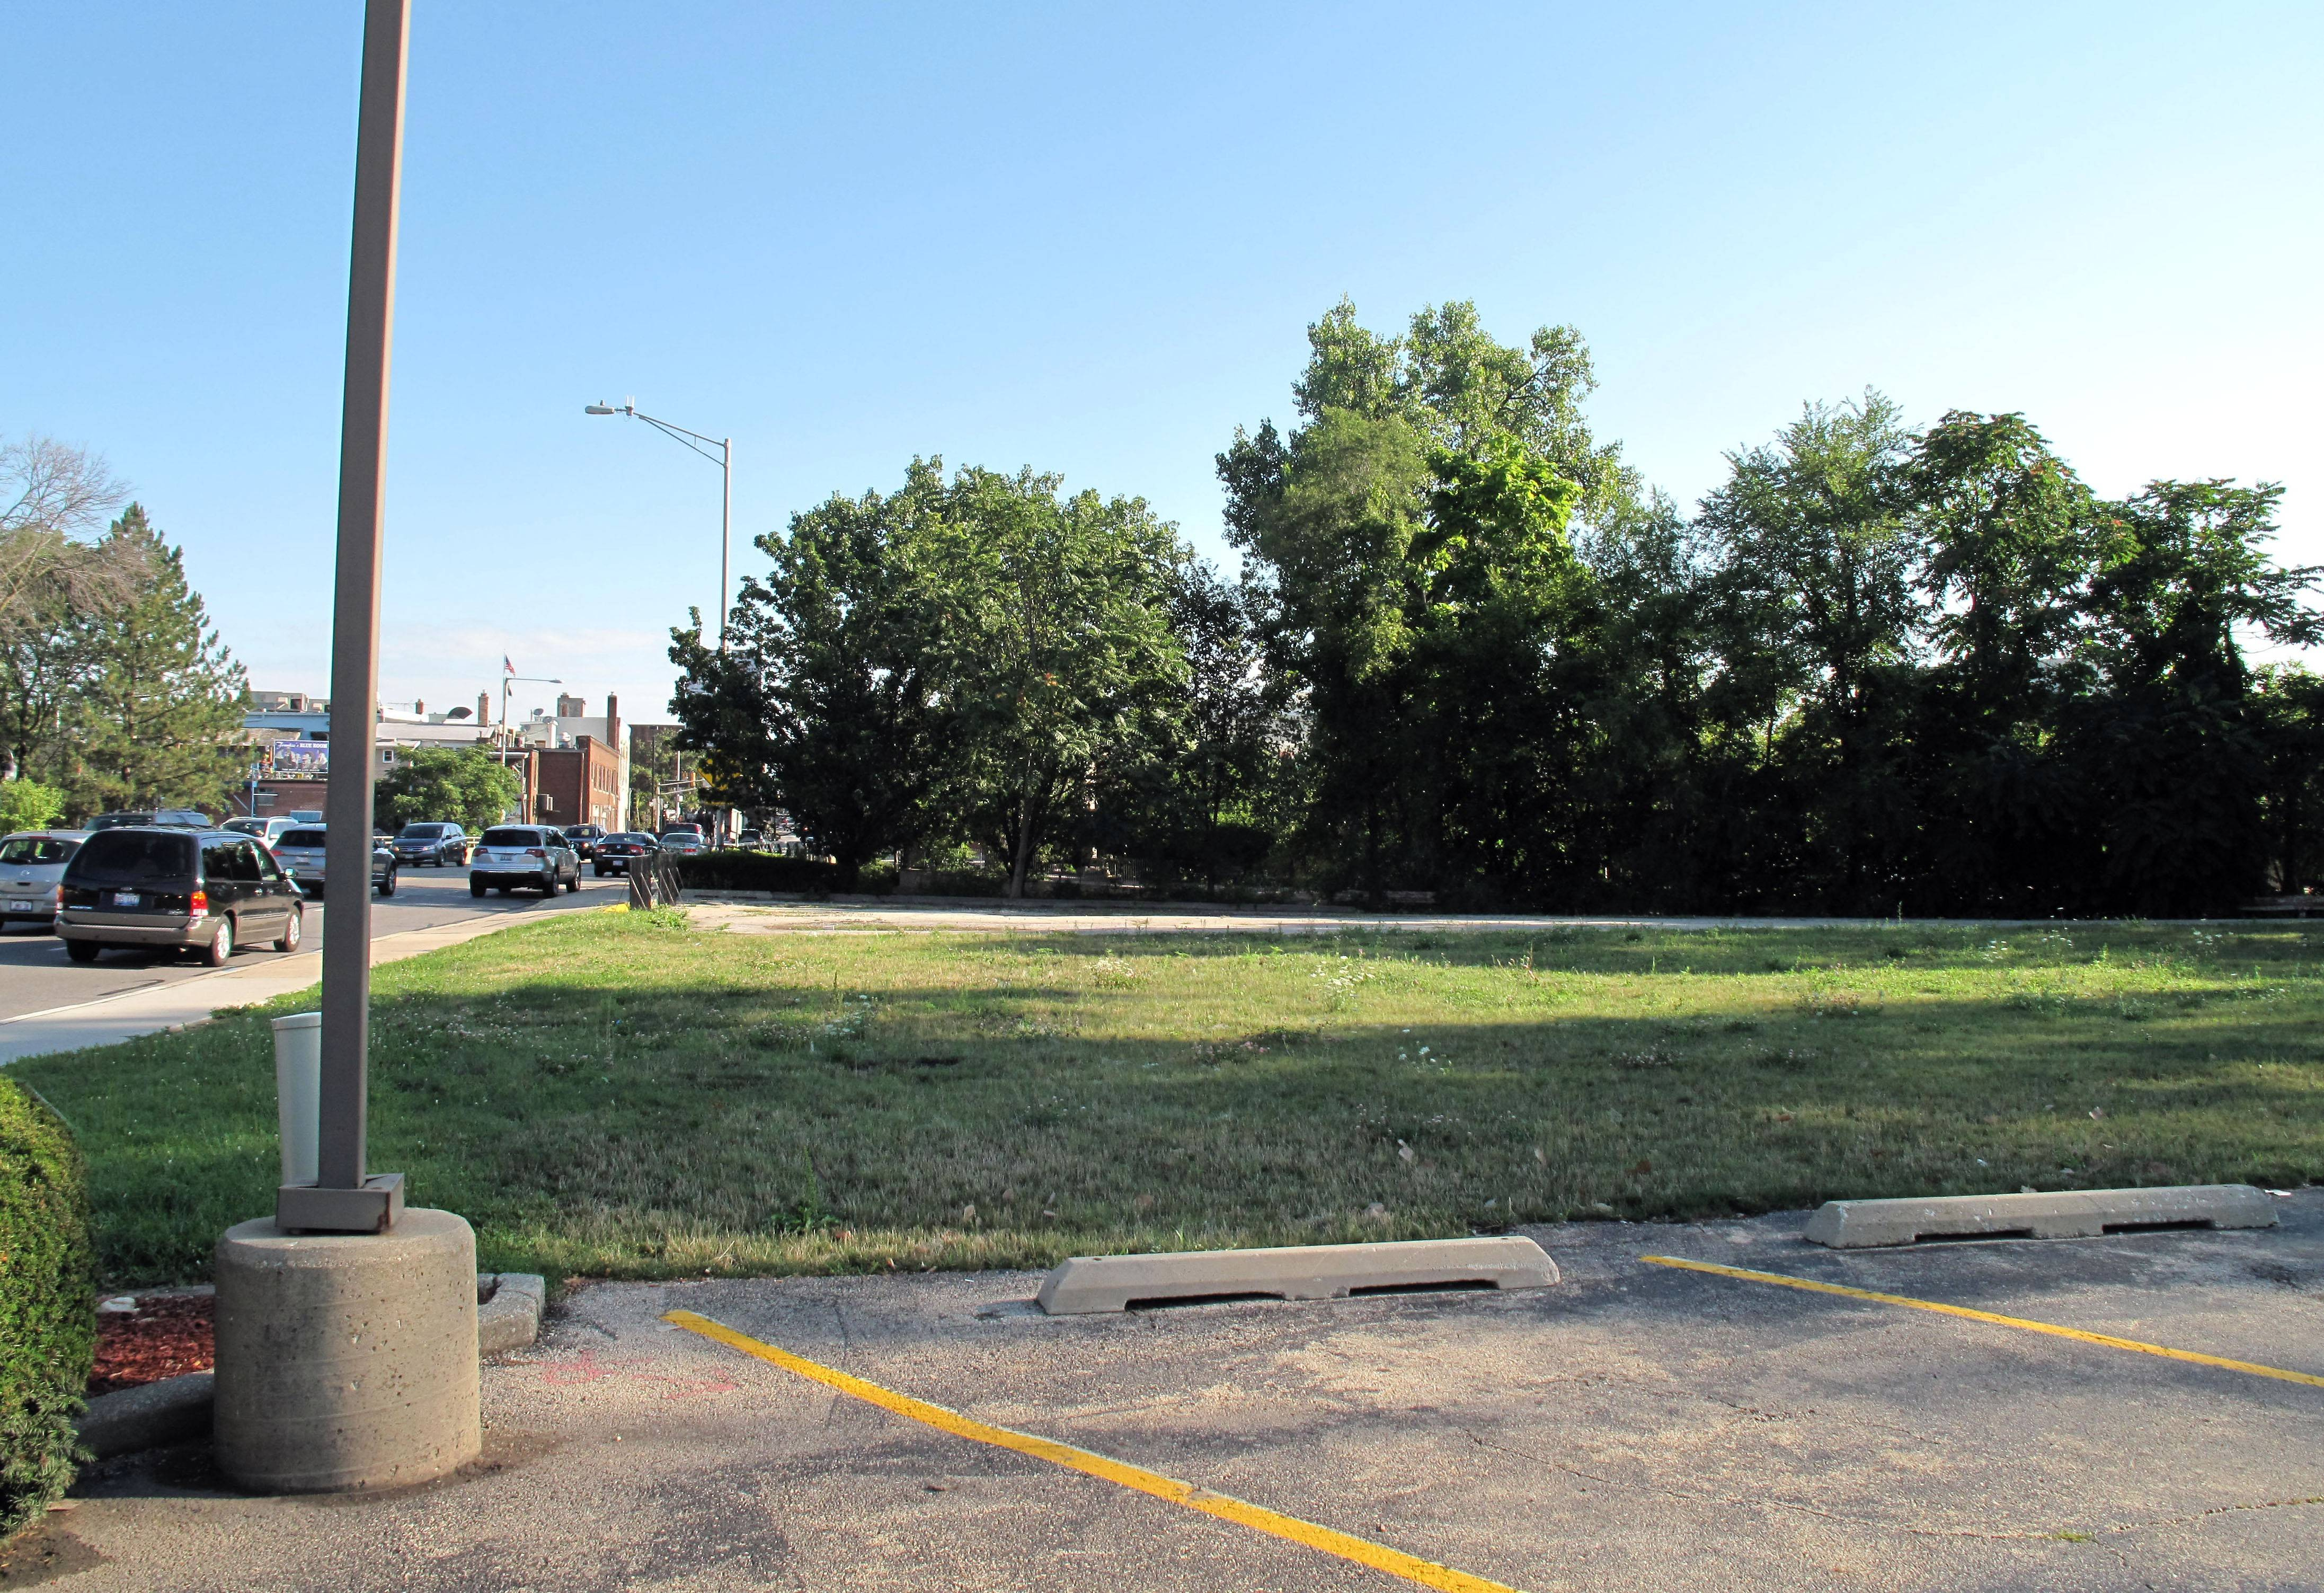 North Central College and the city of Naperville's Riverwalk Commission have begun the first phase of engineering work on a park and plaza at this site at 430 S. Washington St.